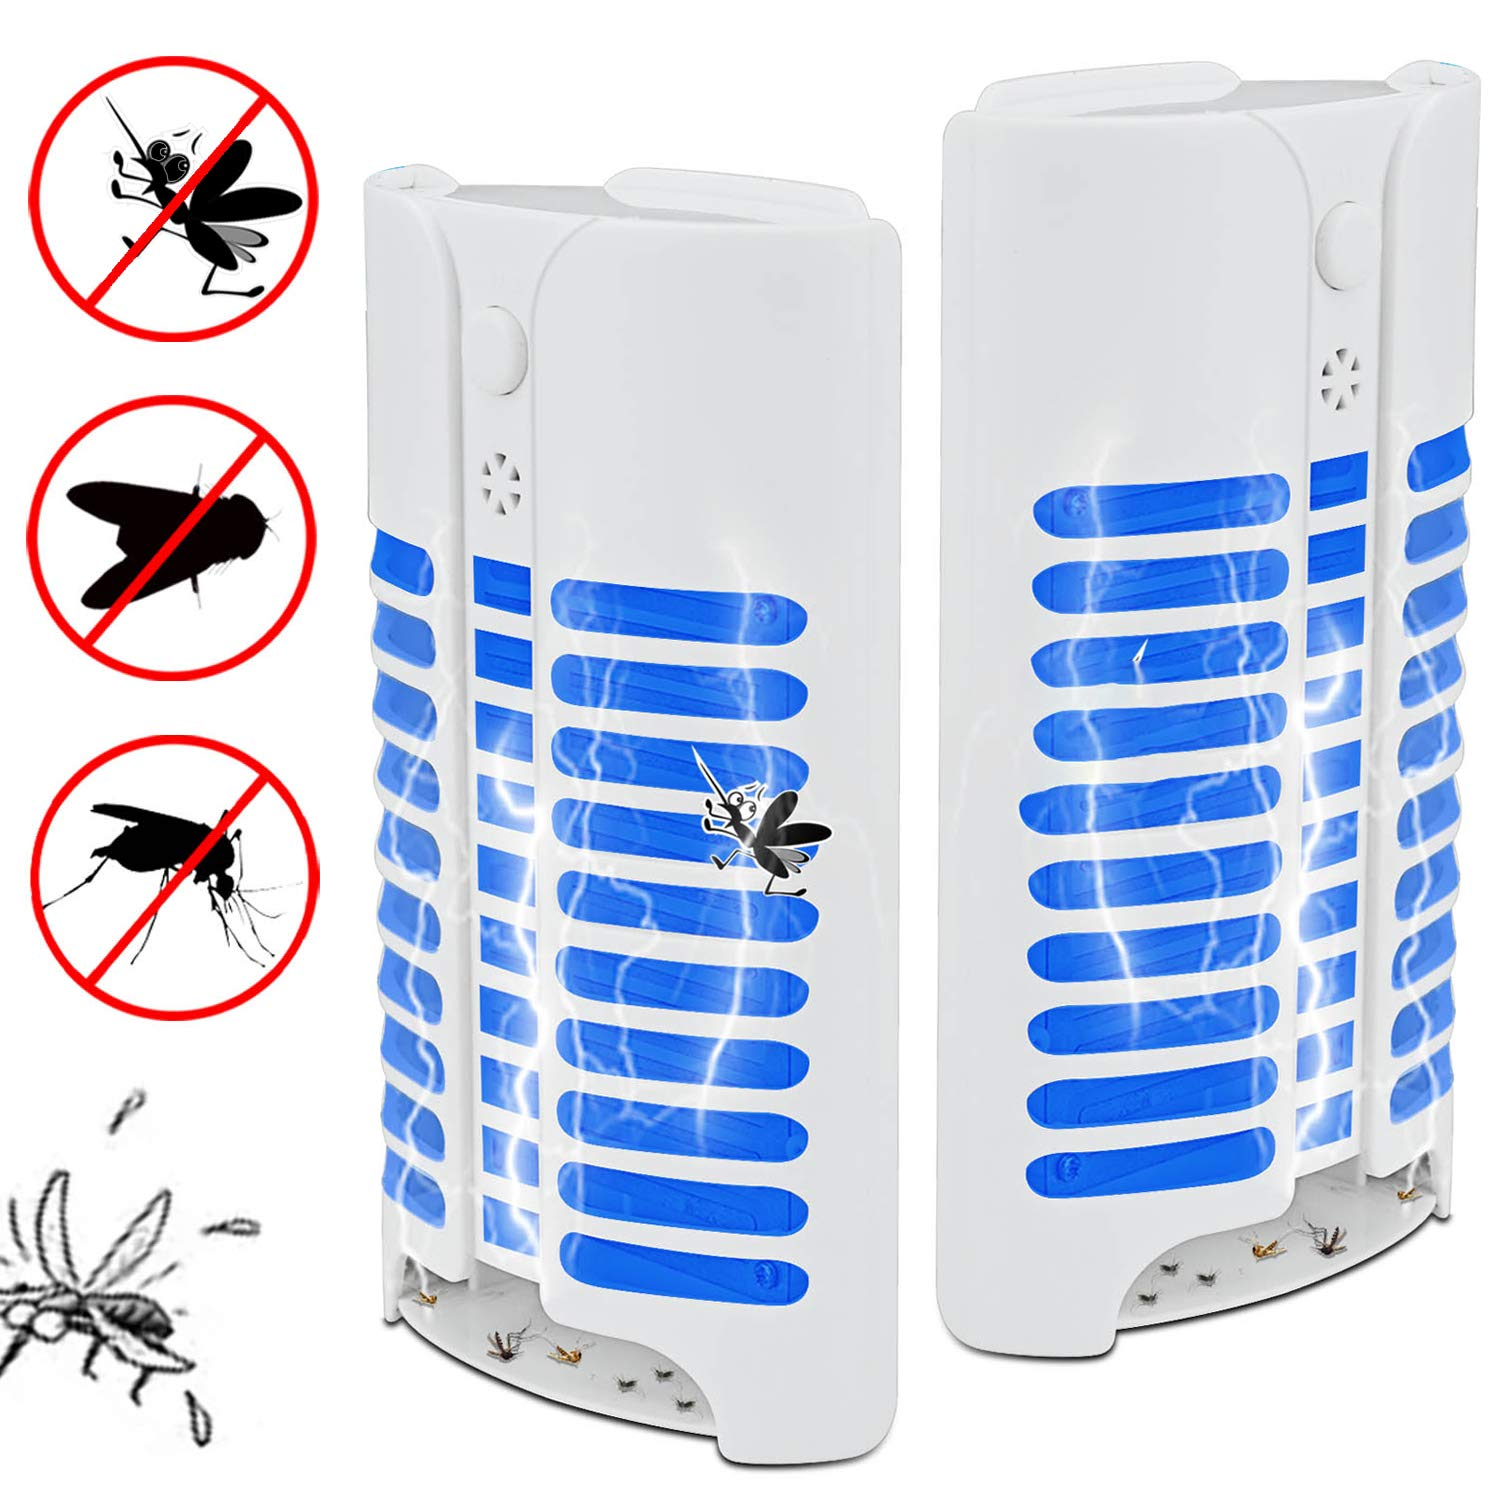 Duledio Electric Indoor Bug Zapper,Mosquito Killer, Insect and Fly Zapper Catcher Killer Trap with UV Bug Light with Large Coverage 100% Safety for Home, Office and Patio Indoor use